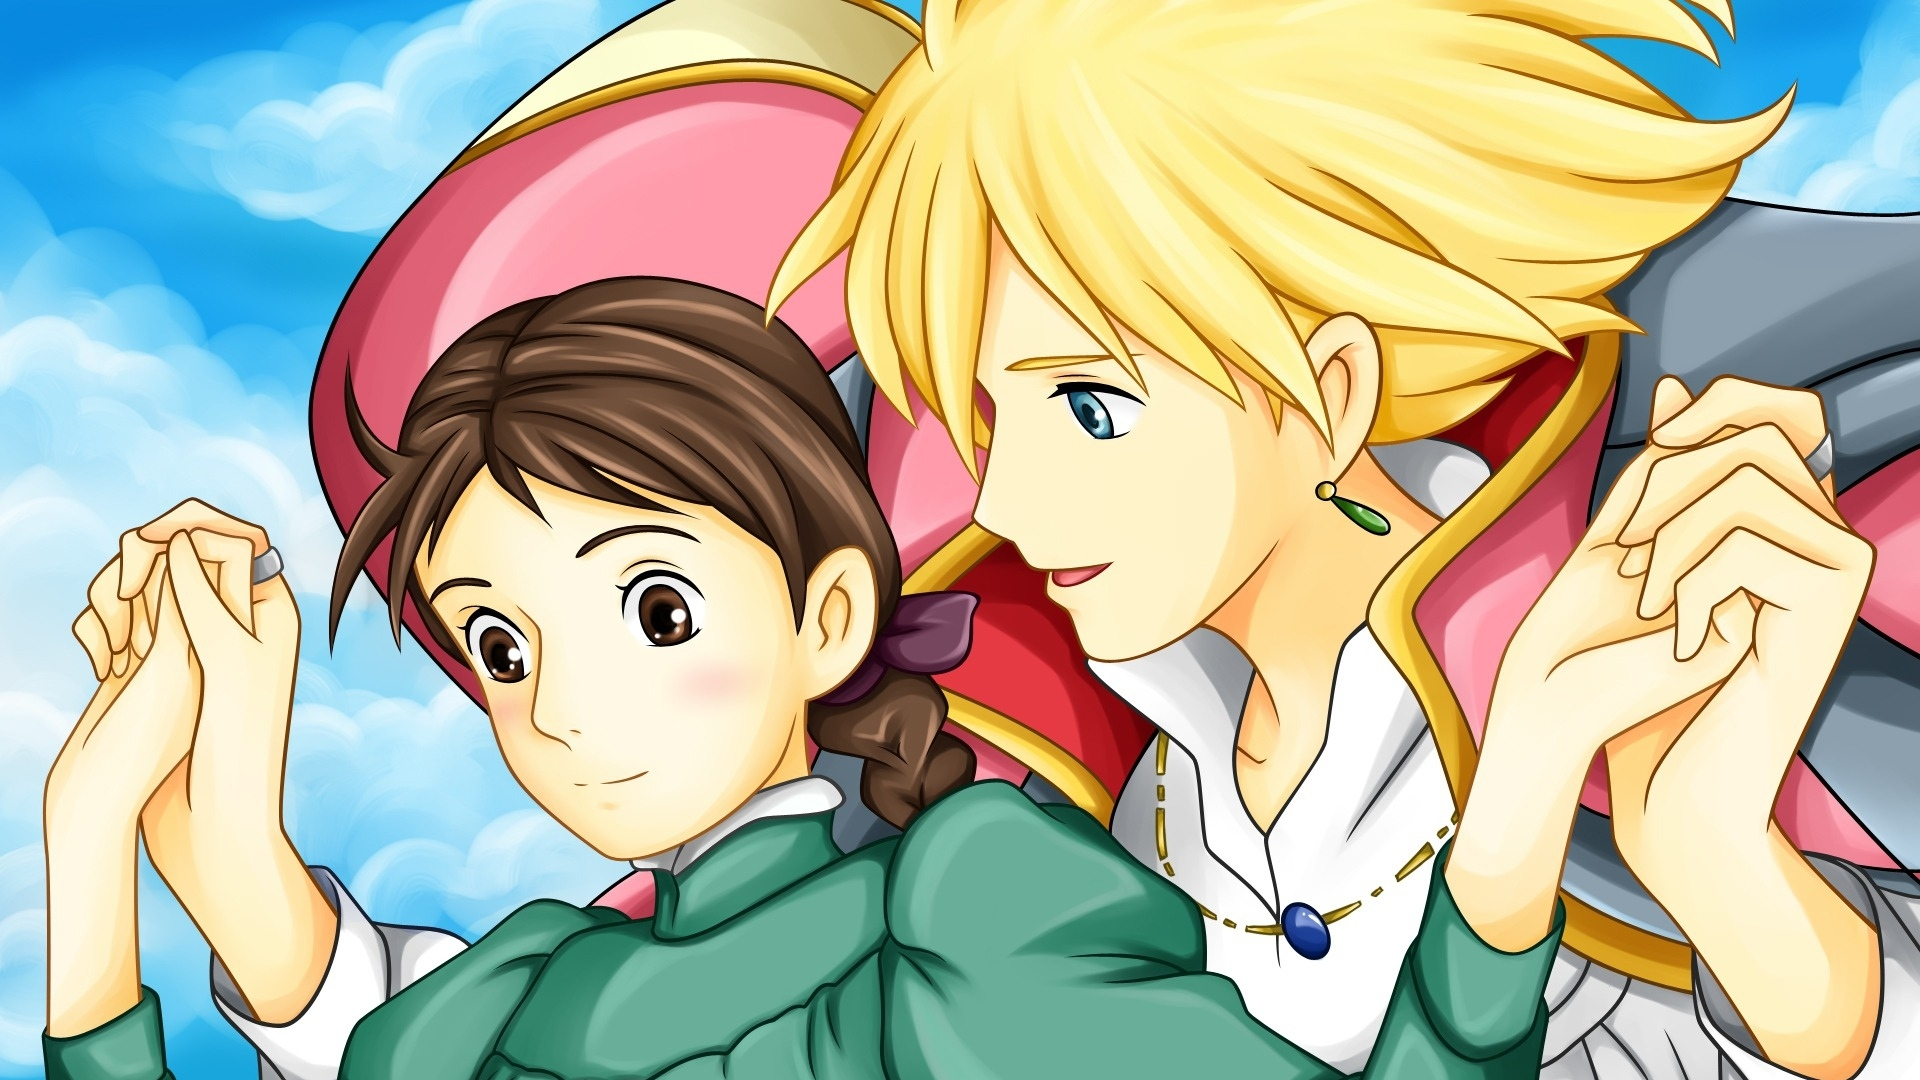 chrisp-howls-moving-castle-howl-sophie-hatter-boy-girl-hands-smile-winding-1920x1080-1920-wallpaper-wp3604069